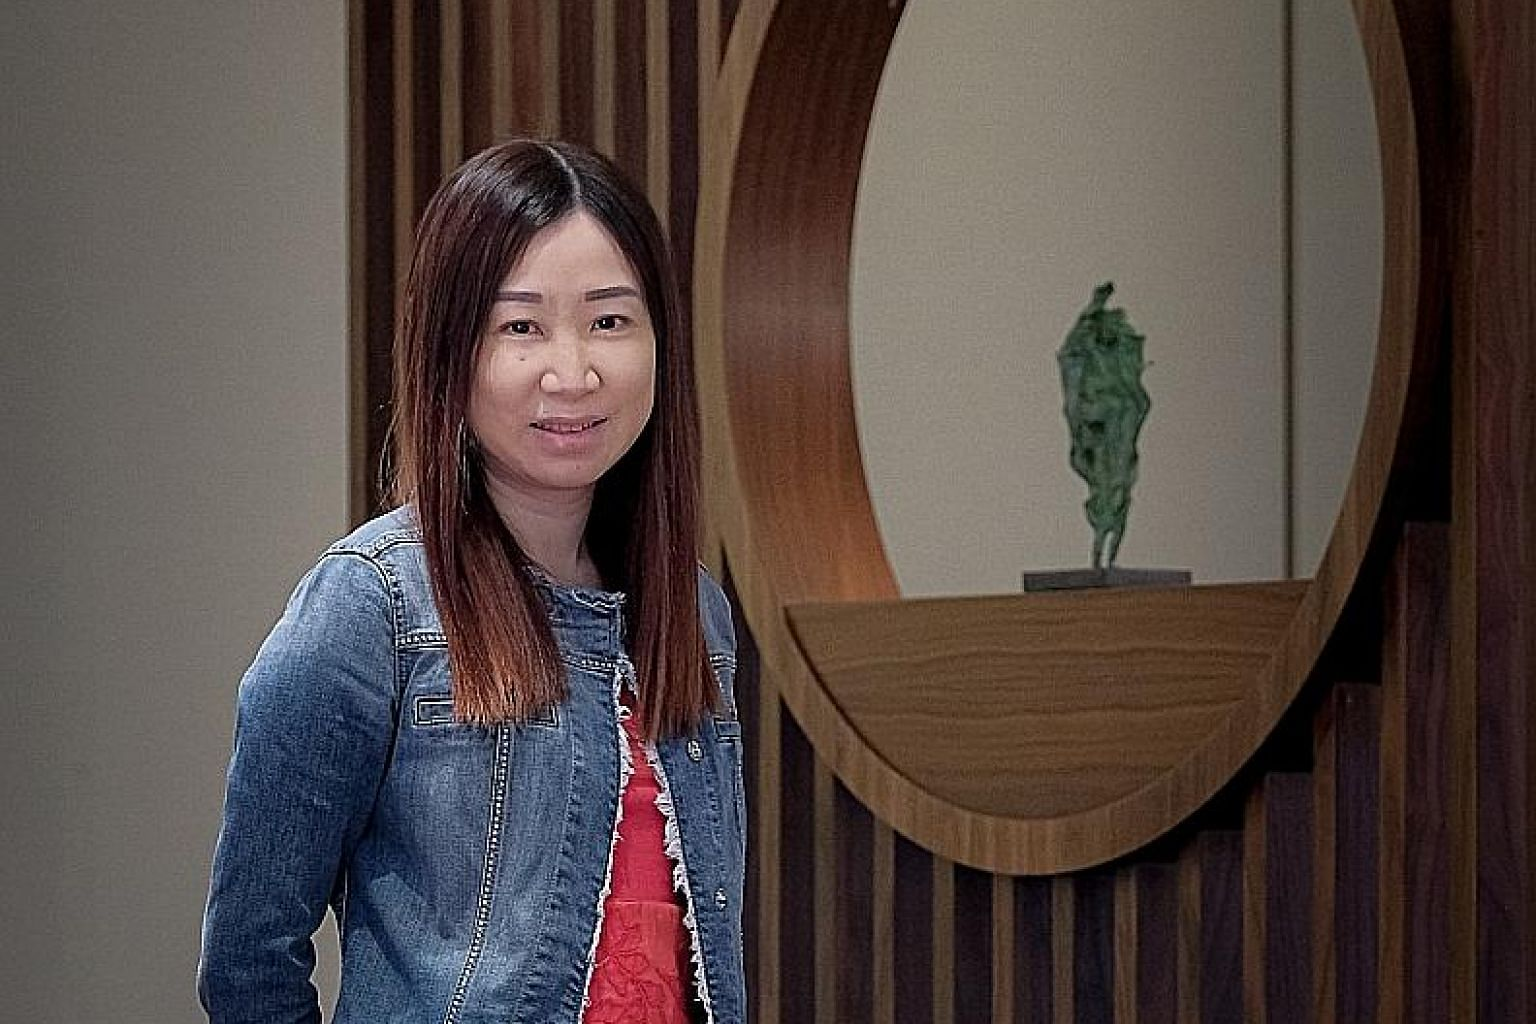 Ms Tan Siew Lee, OCBC Bank's head of wealth management, advises investors to first have enough insurance coverage and emergency cash, as well as plan for retirement, before using spare money to invest for capital gains.